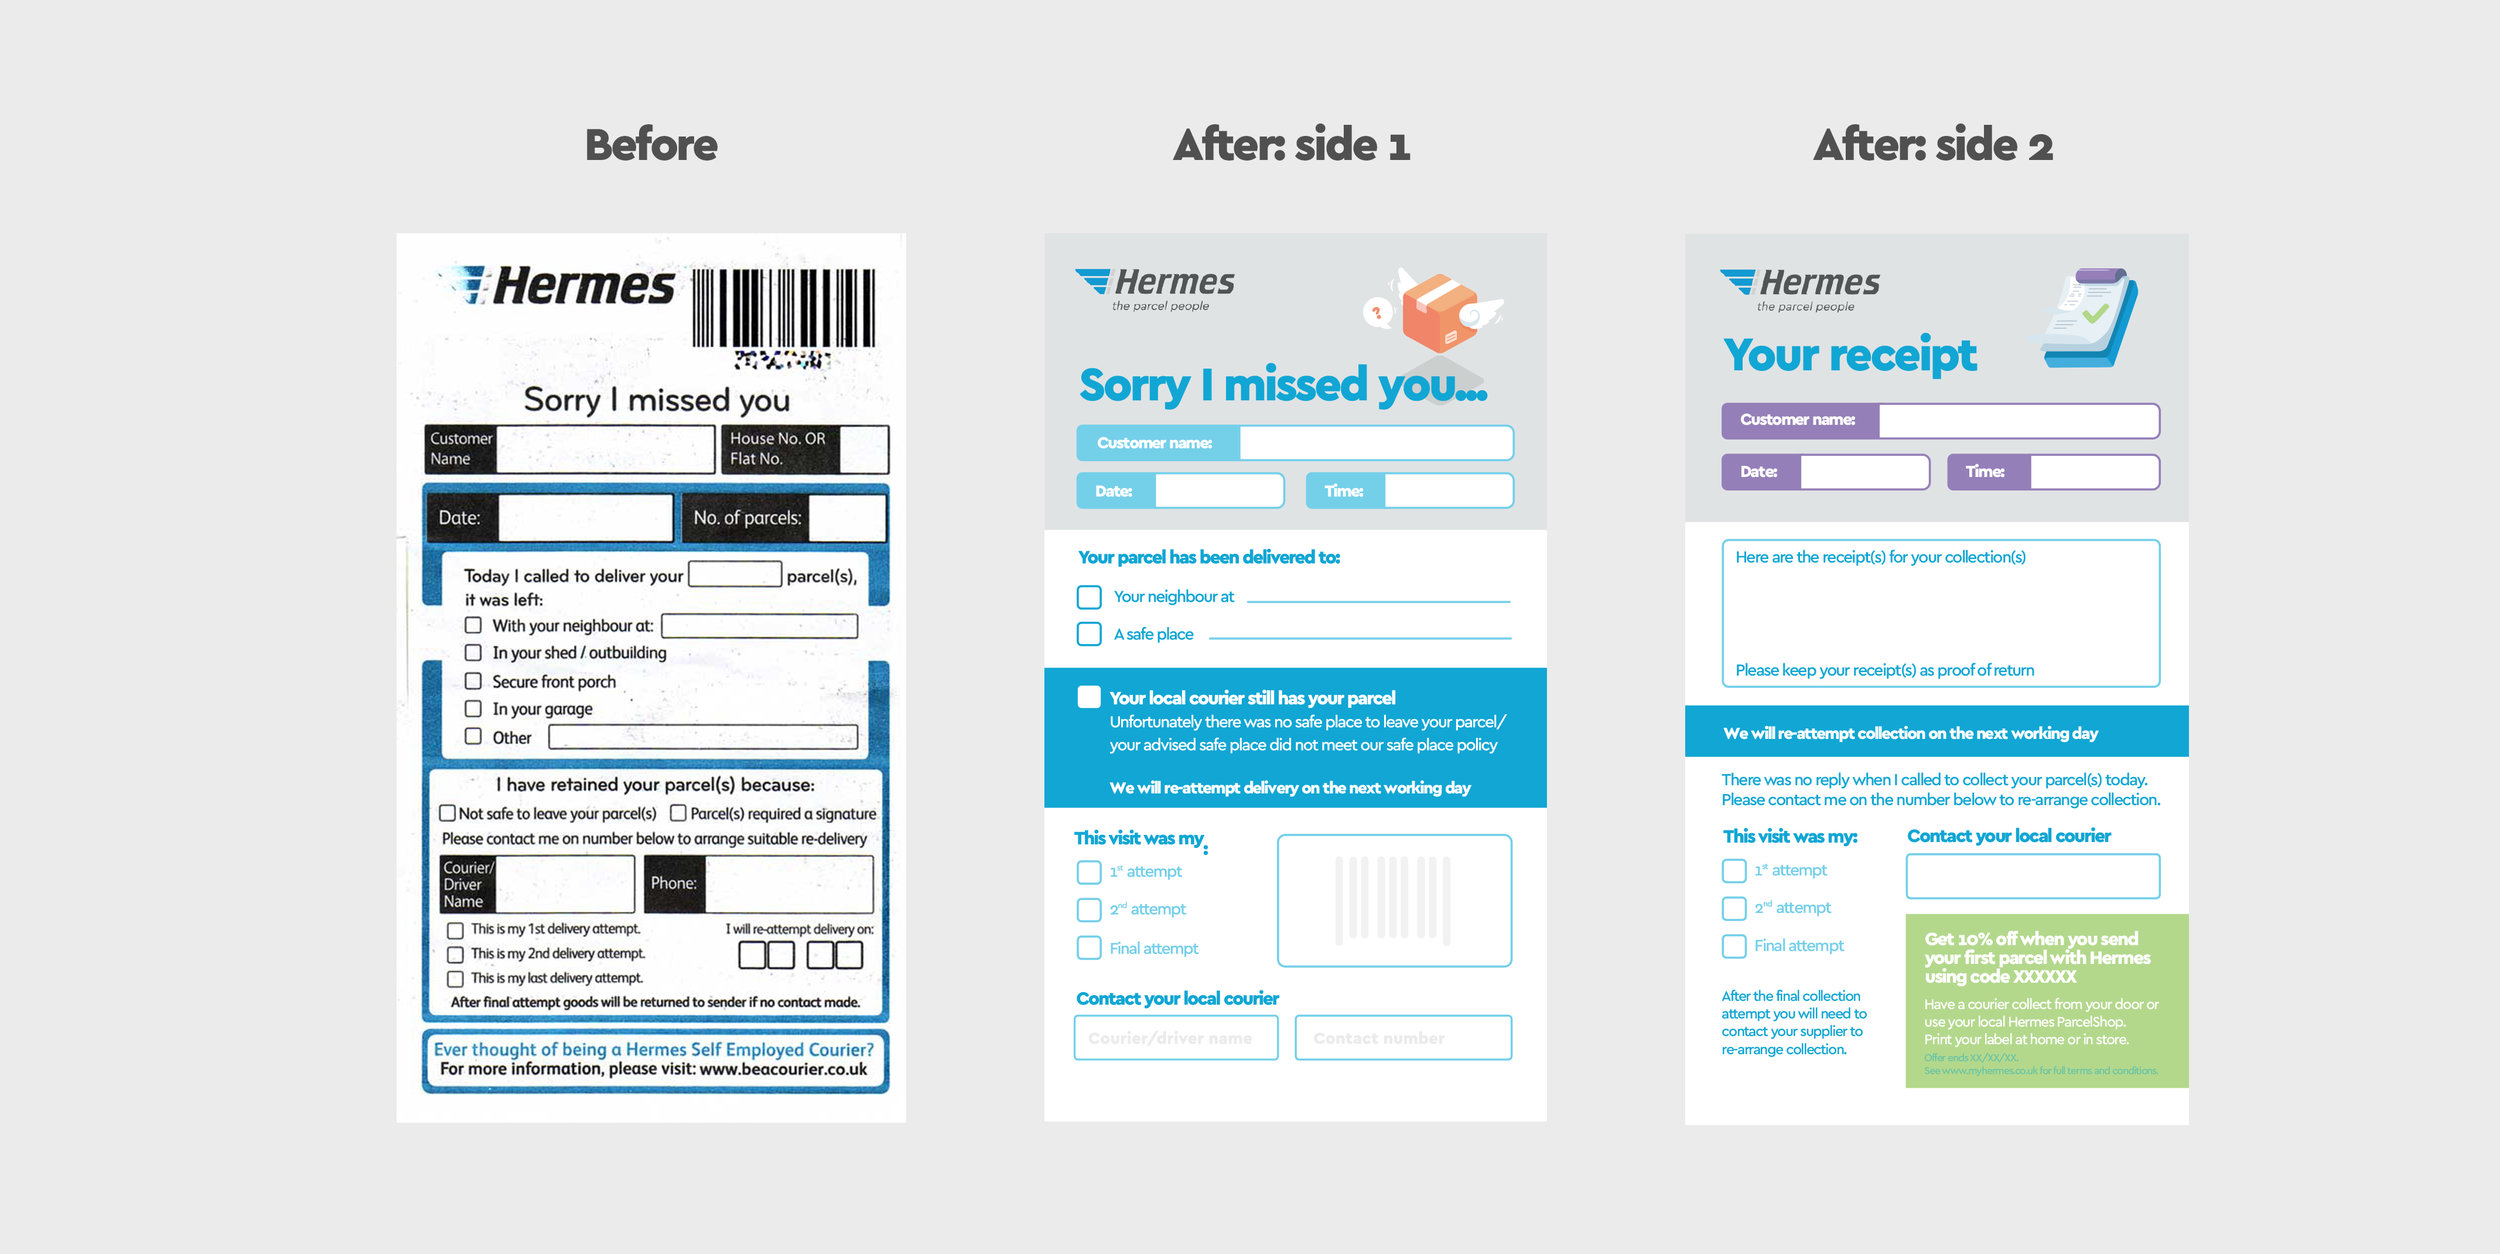 Ever missed a delivery?    These are the courier slips that get put through your doors if you were out when a parcel had an attempted delivery. They used to look terrible, now they don't! I introduced some fun and friendly elements that make missing a parcel delivery just a little less depressing. There are now two sides, one for the standard purpose and the other as a receipt for a collected parcel, keeping the amount of paper down and the planet a little greener.